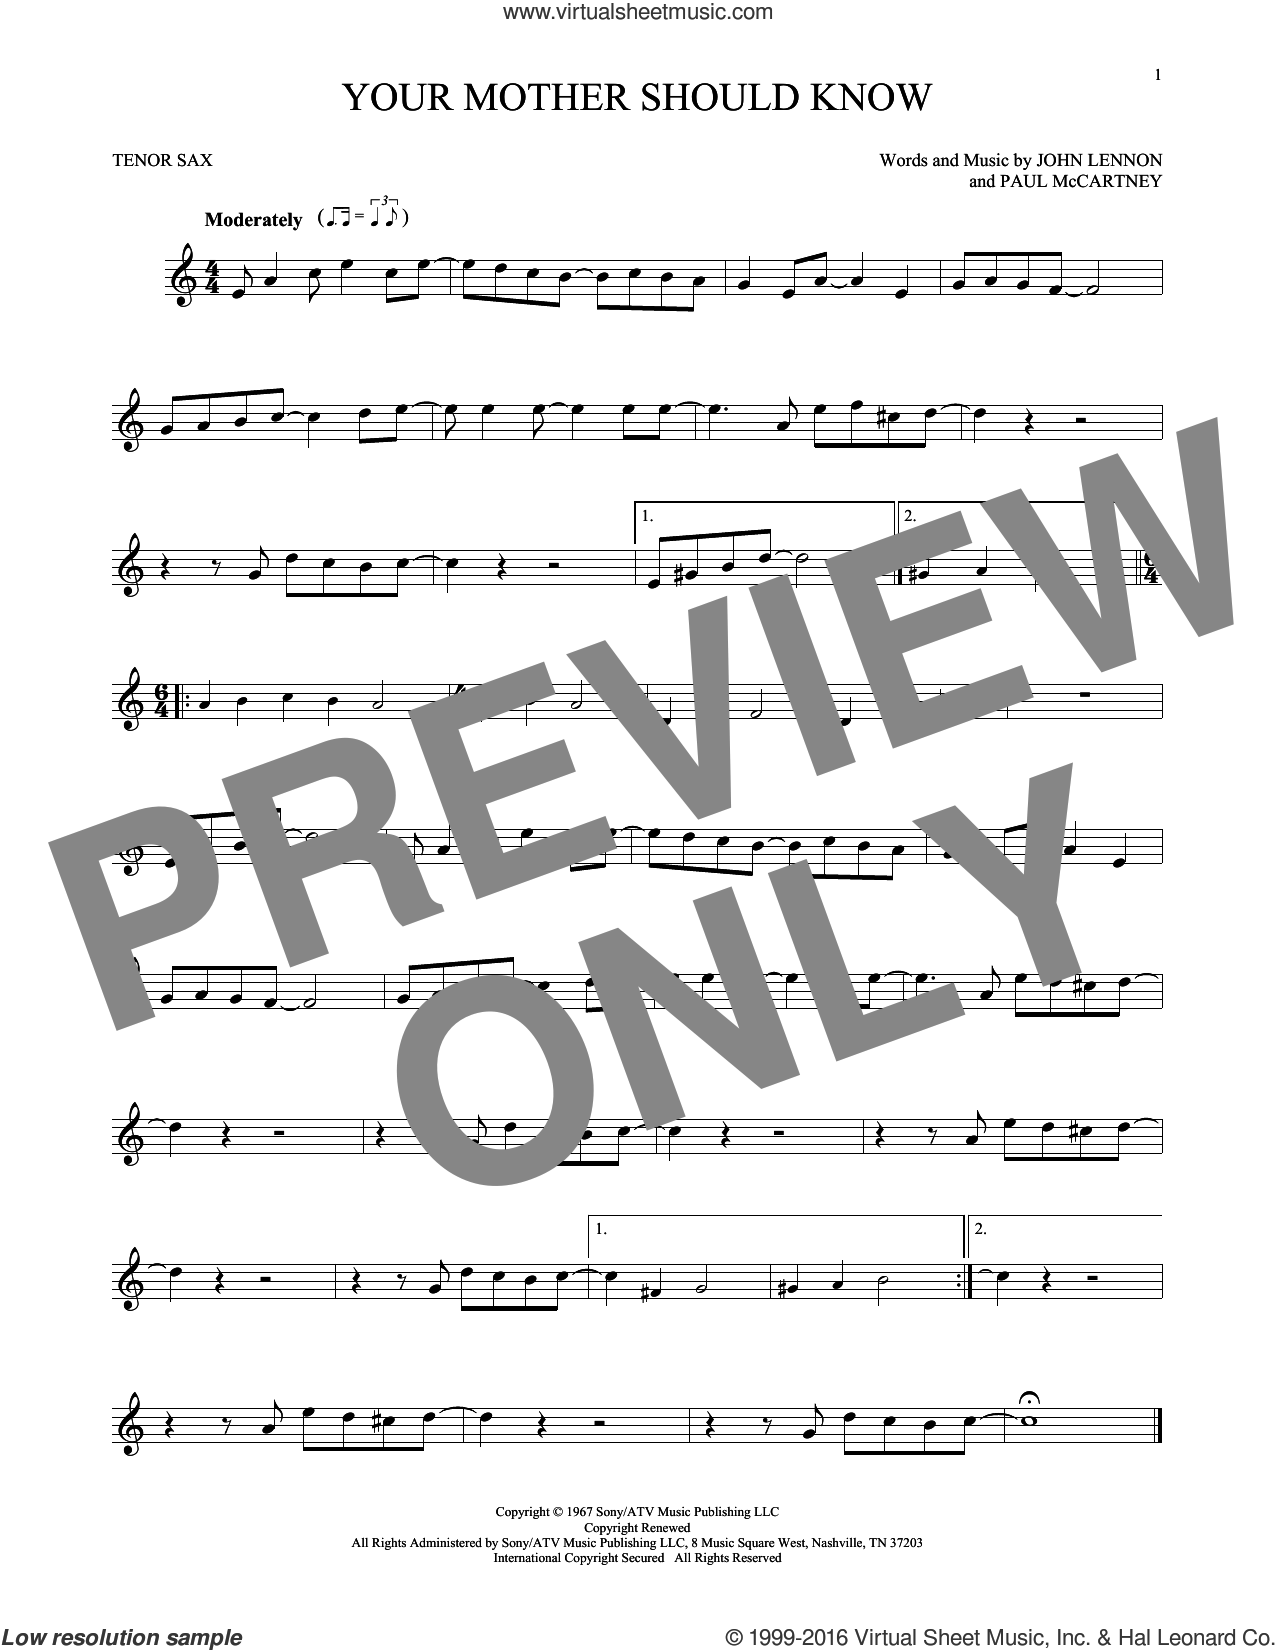 Your Mother Should Know sheet music for tenor saxophone solo by Paul McCartney